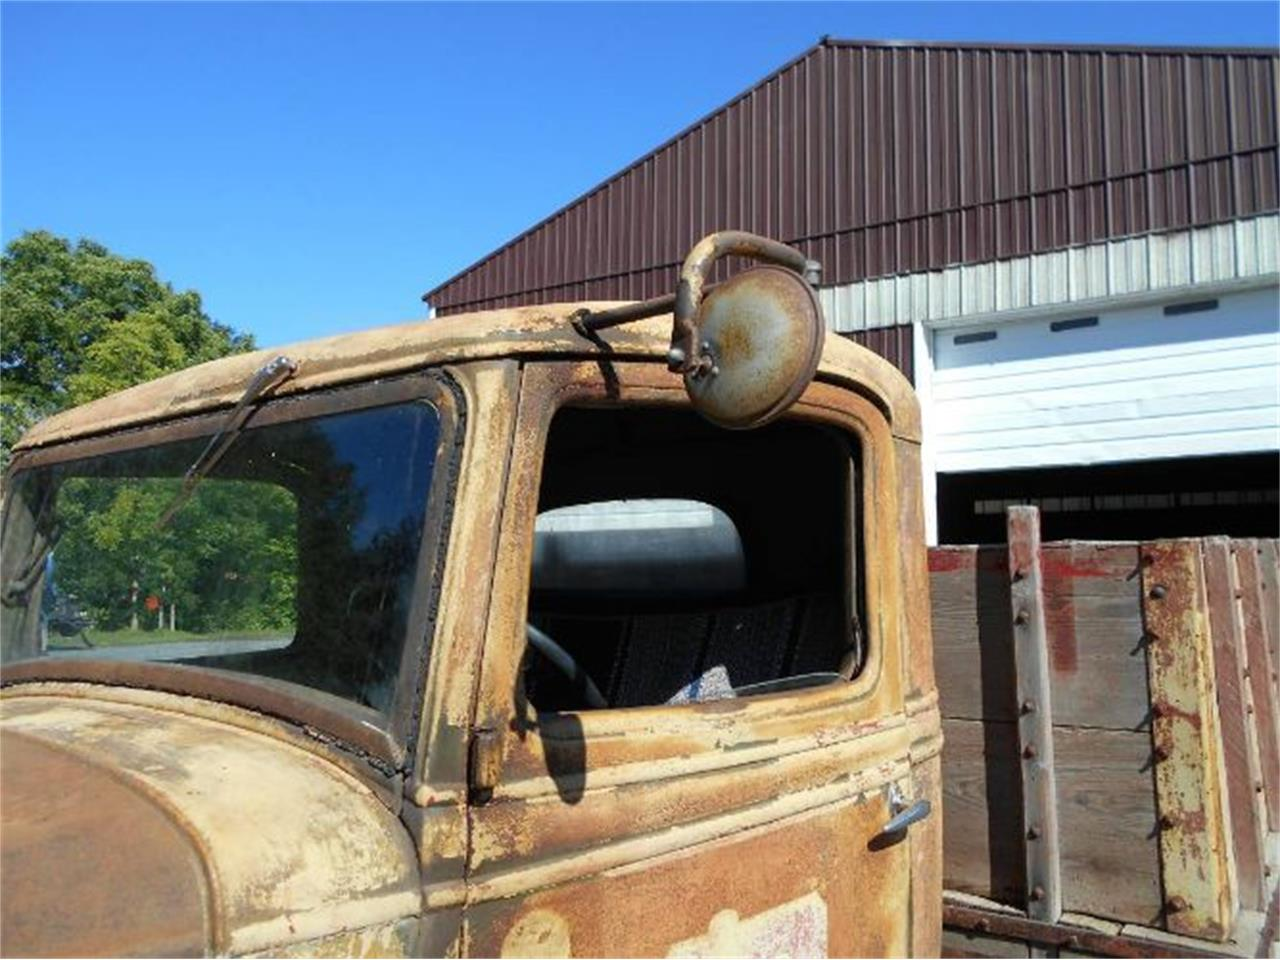 1936 International Pickup for sale in Cadillac, MI – photo 11